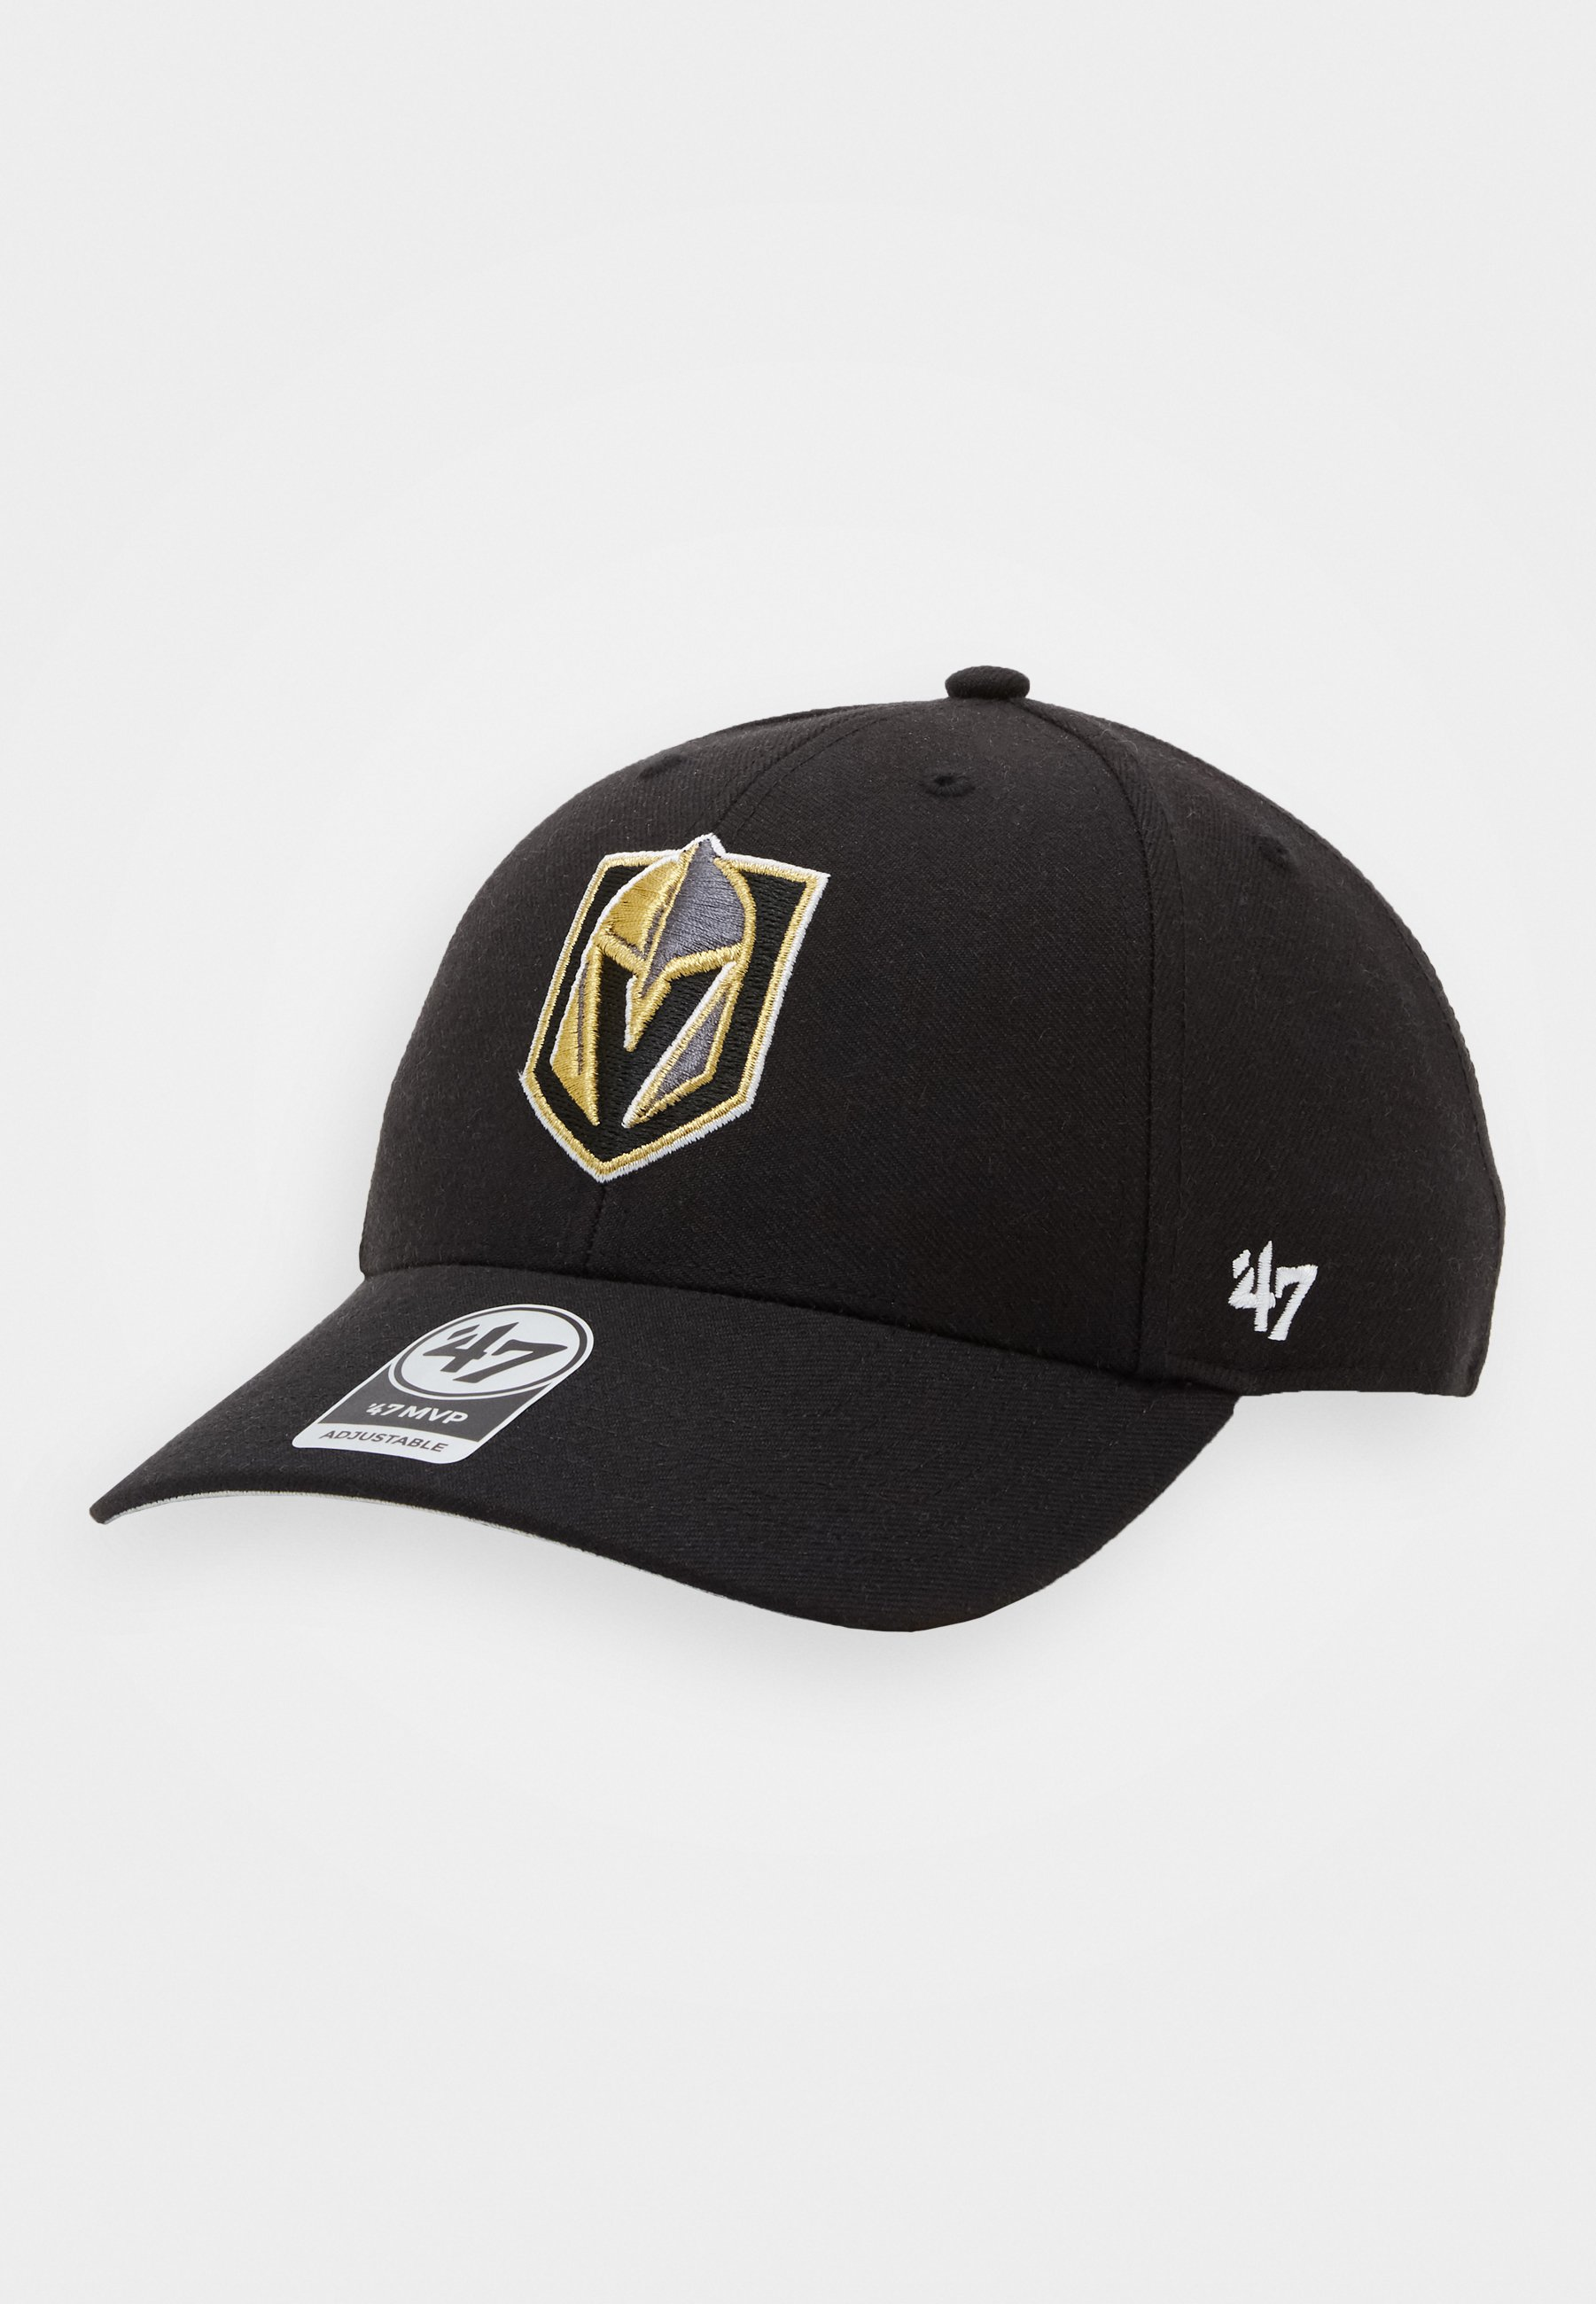 NHL VEGAS GOLDEN KNIGHTS Cap black